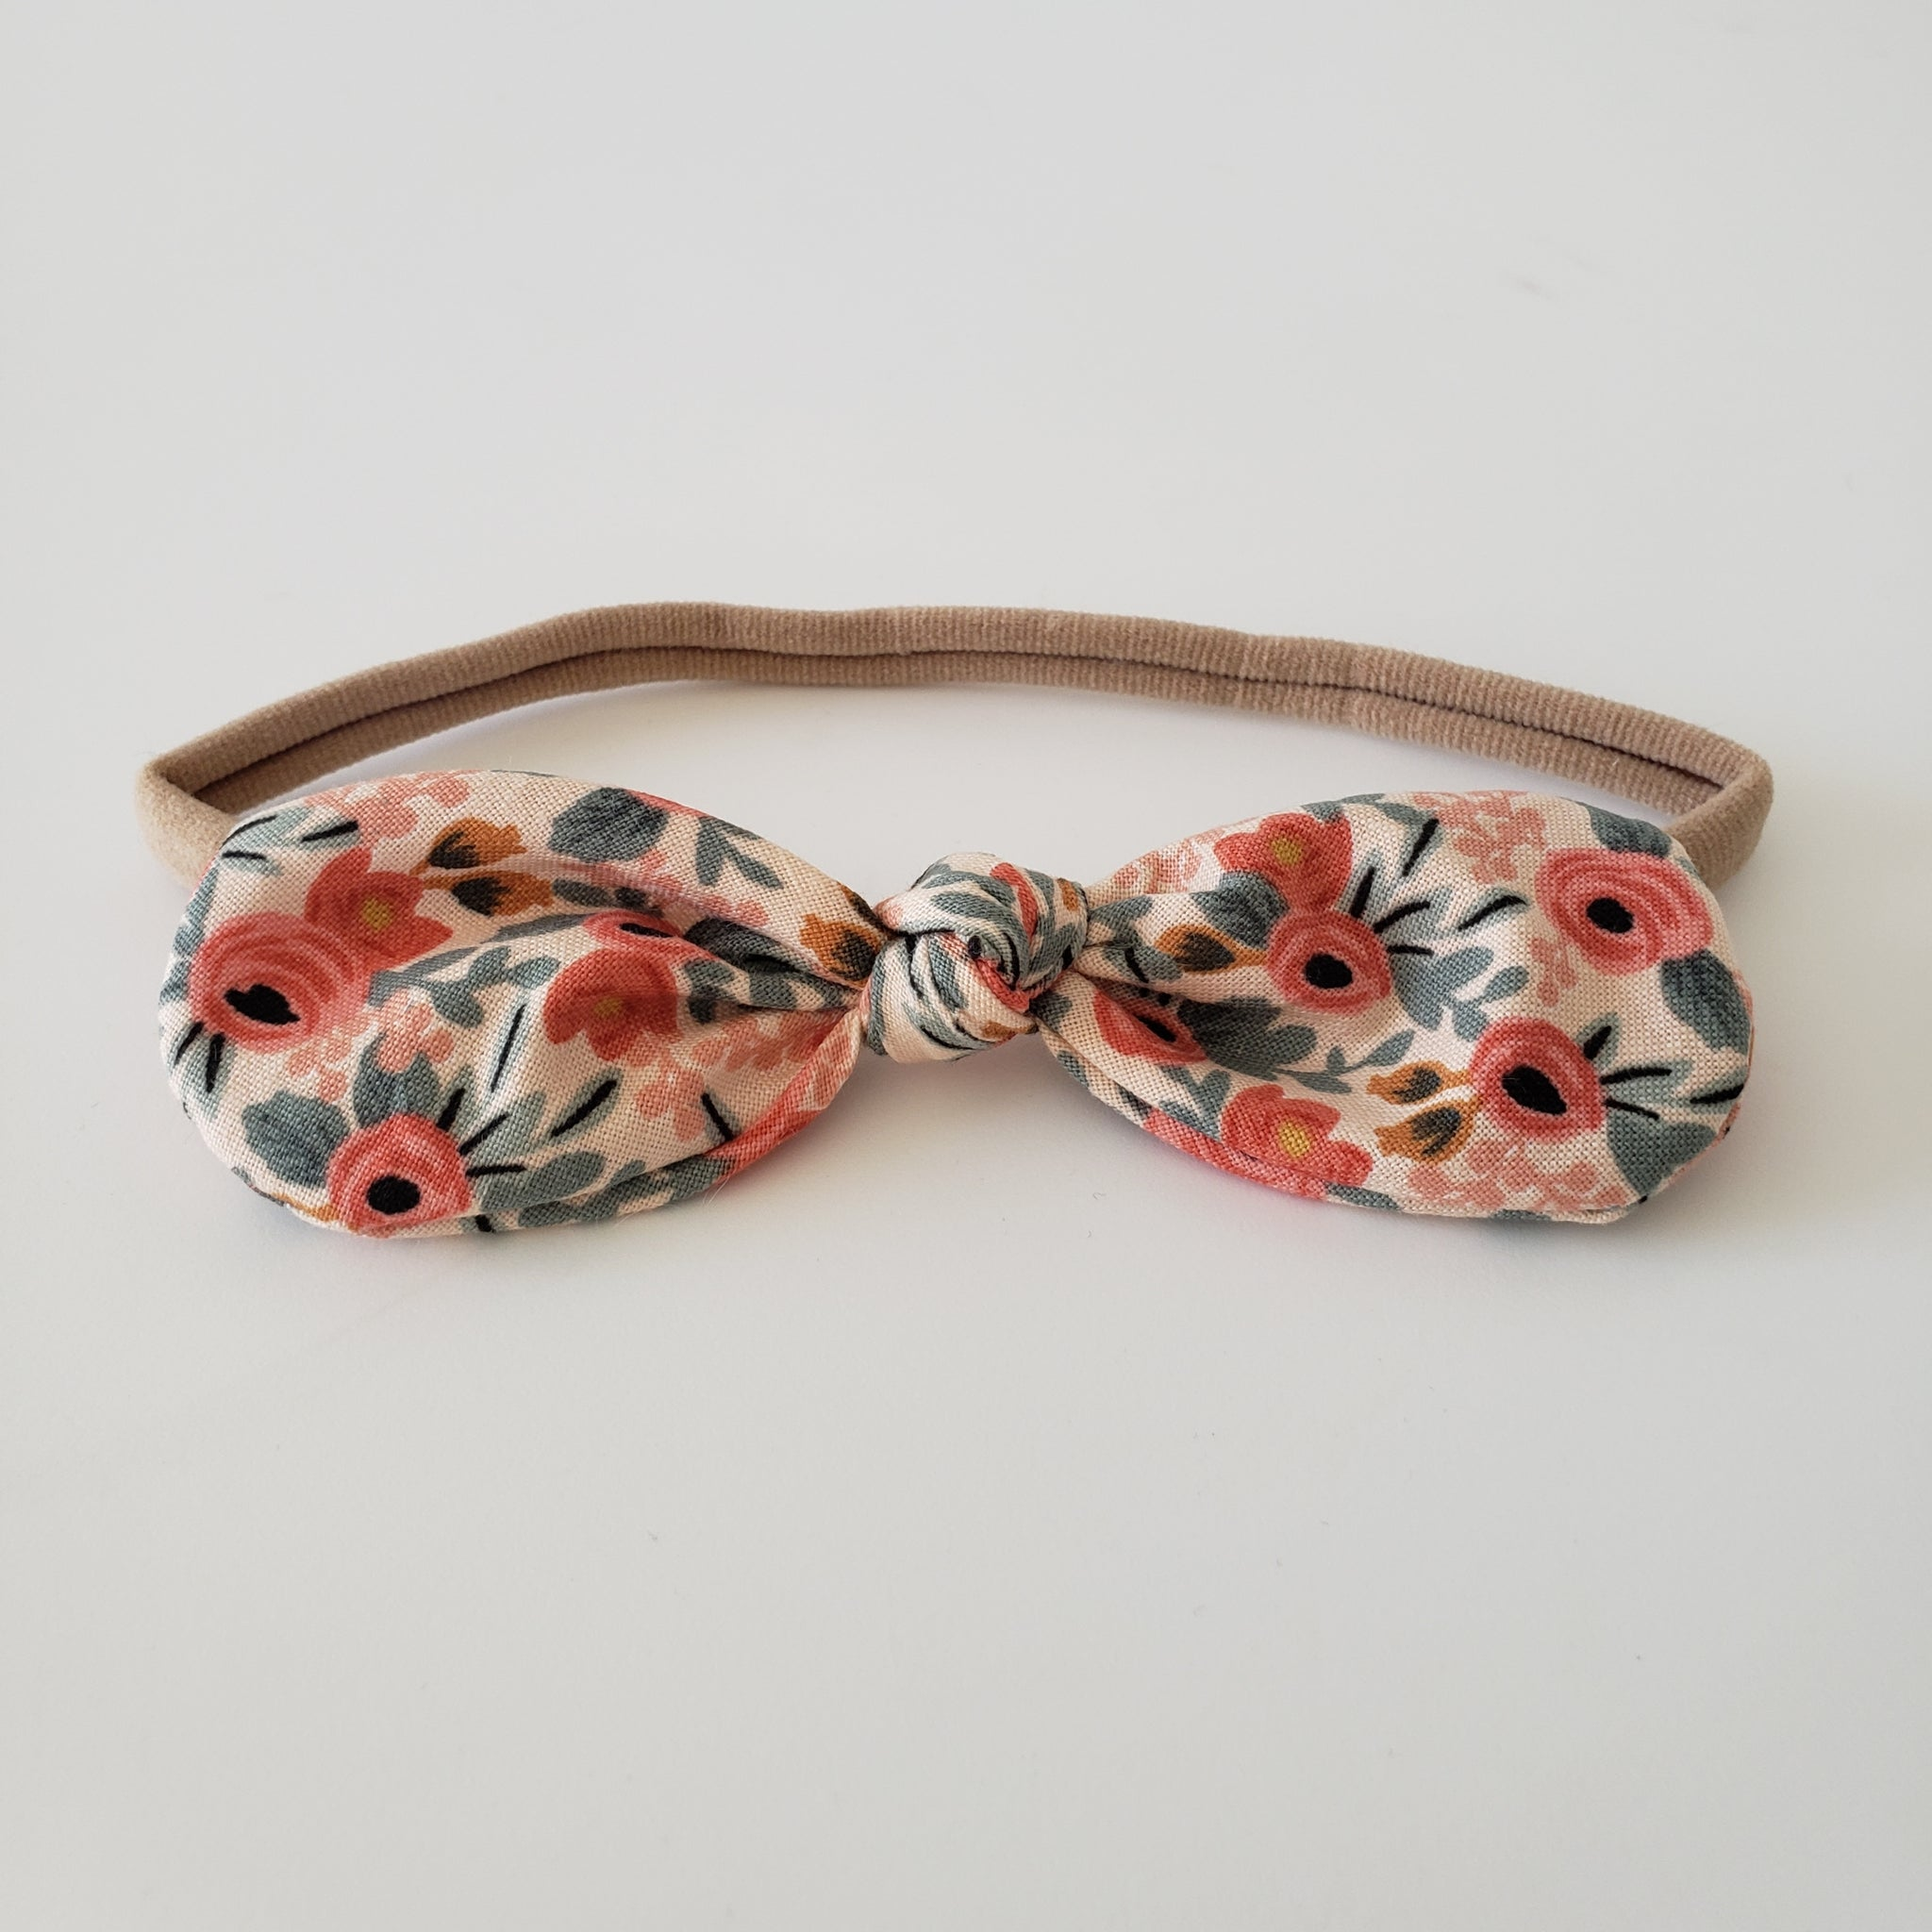 CHILDREN'S BOW HEADBAND - ROSE FLORAL